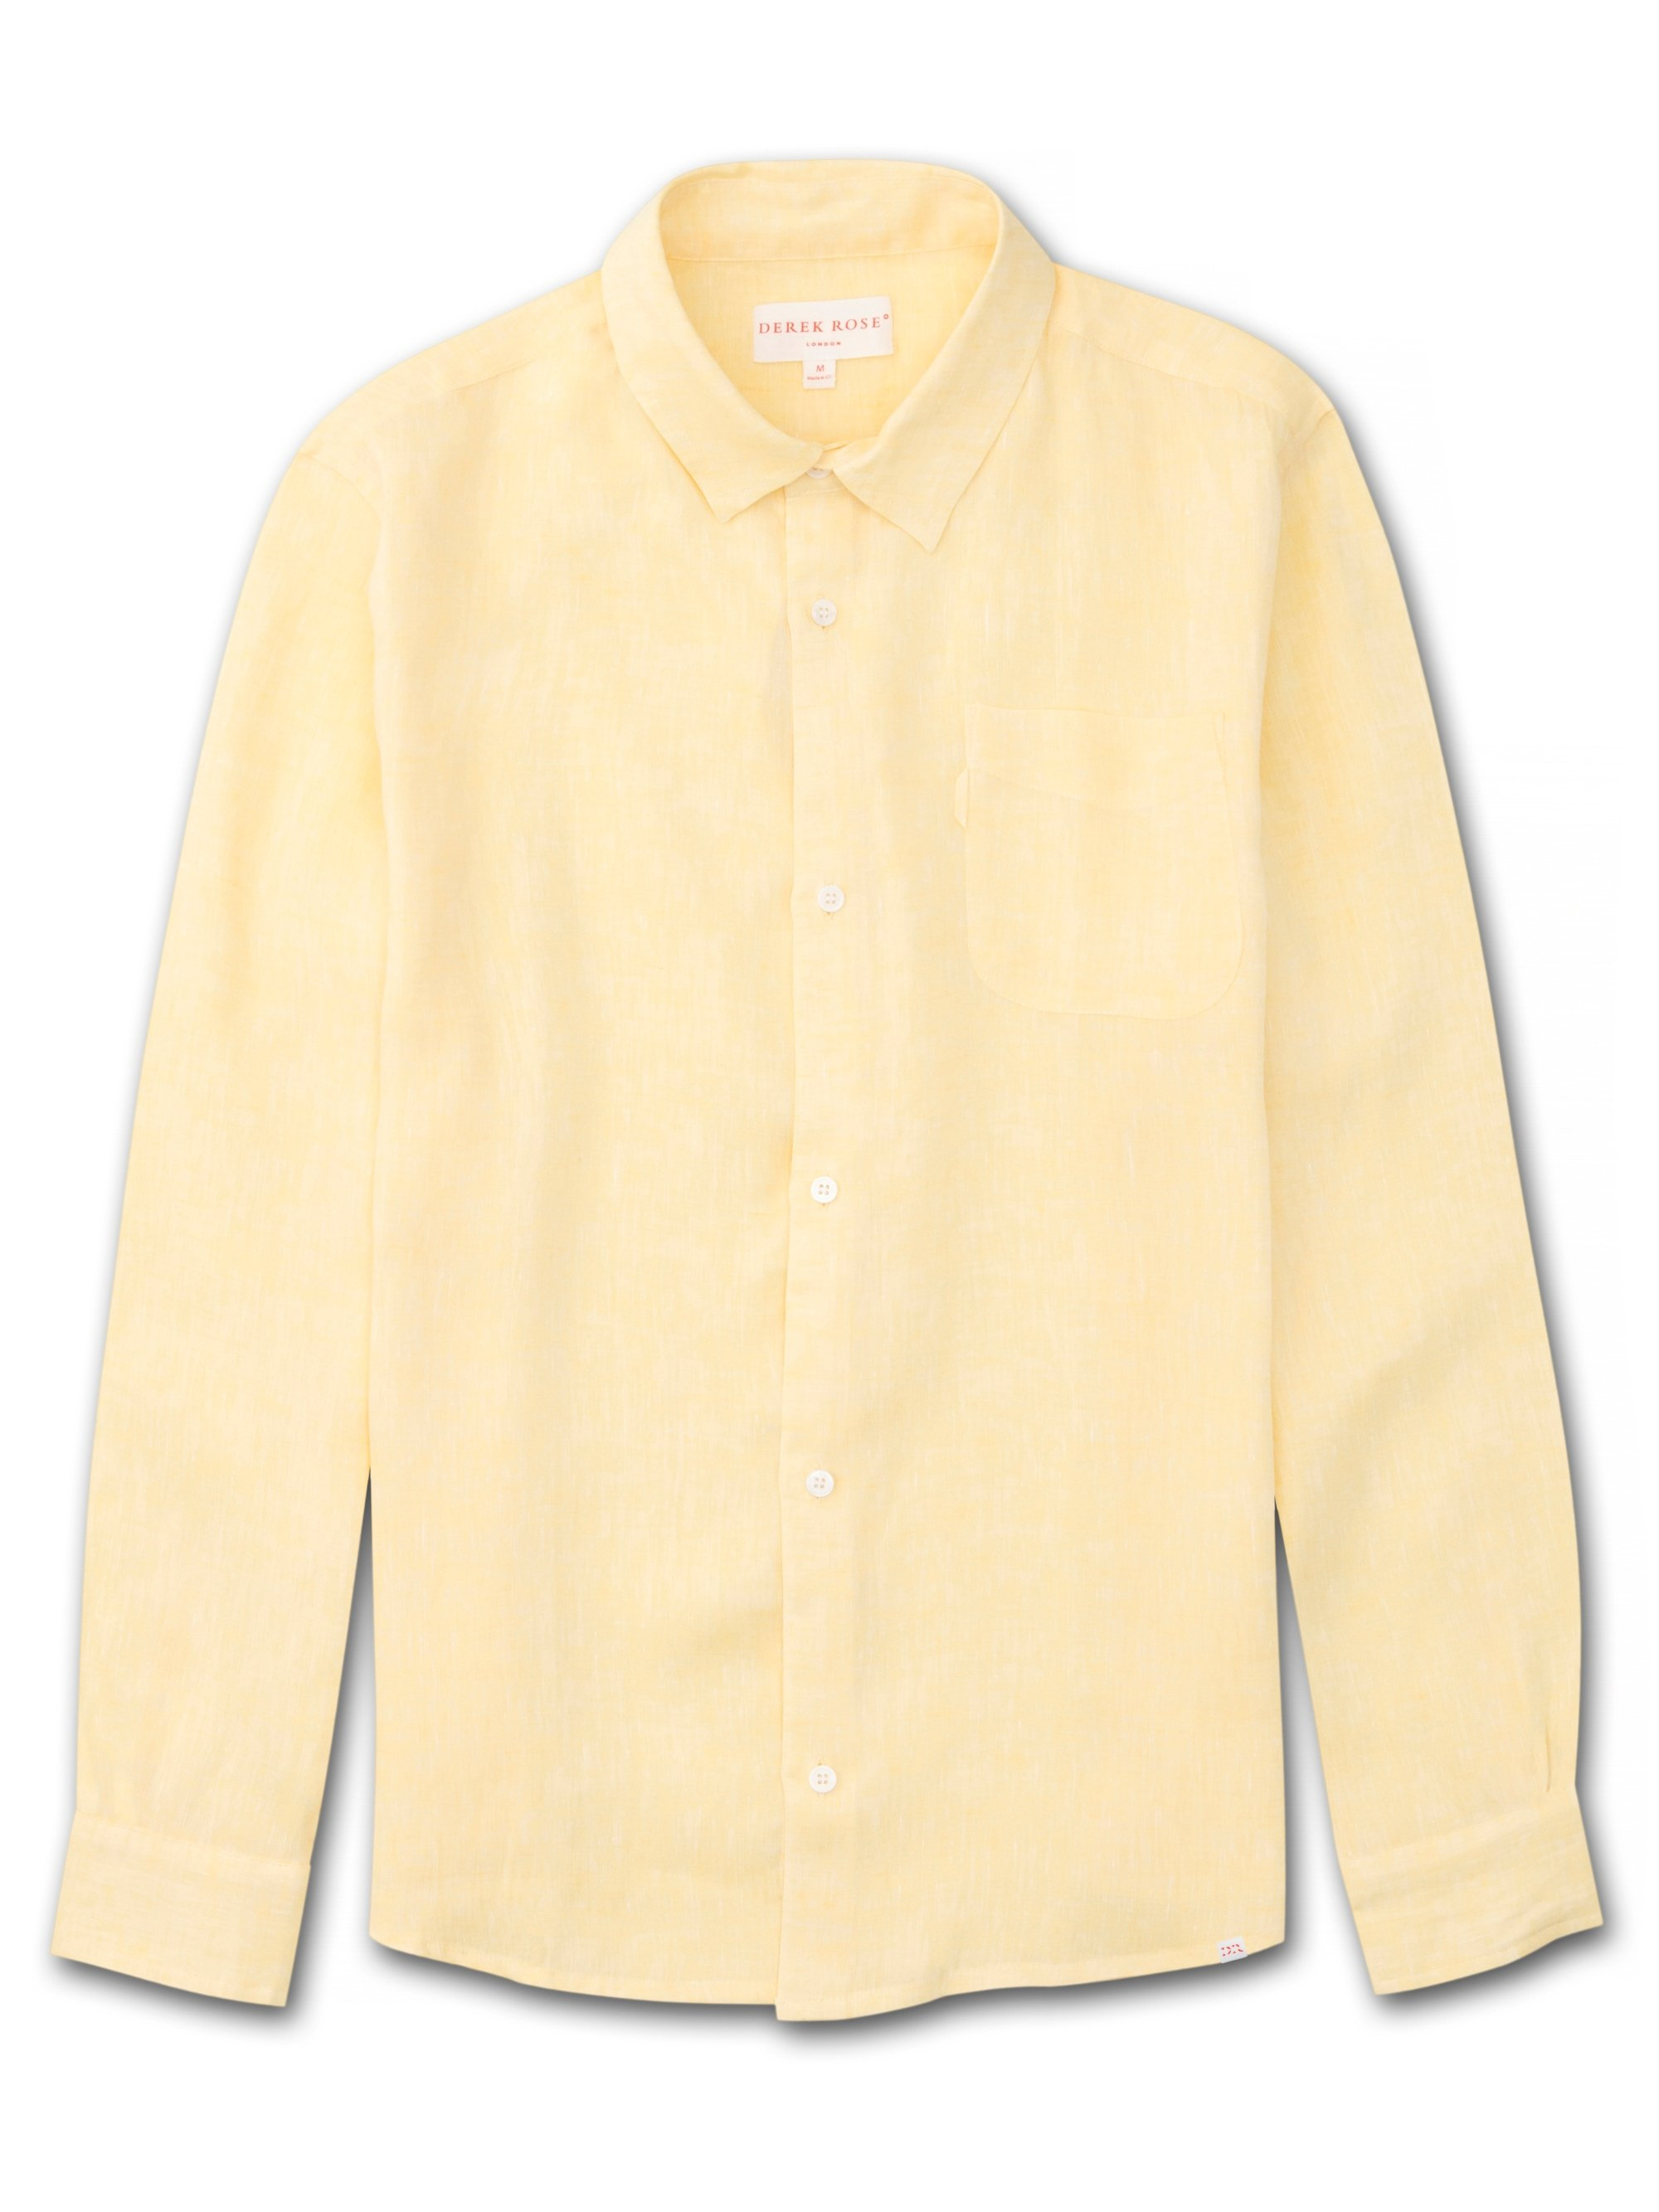 Men's Linen Shirt Monaco Pure Linen Yellow